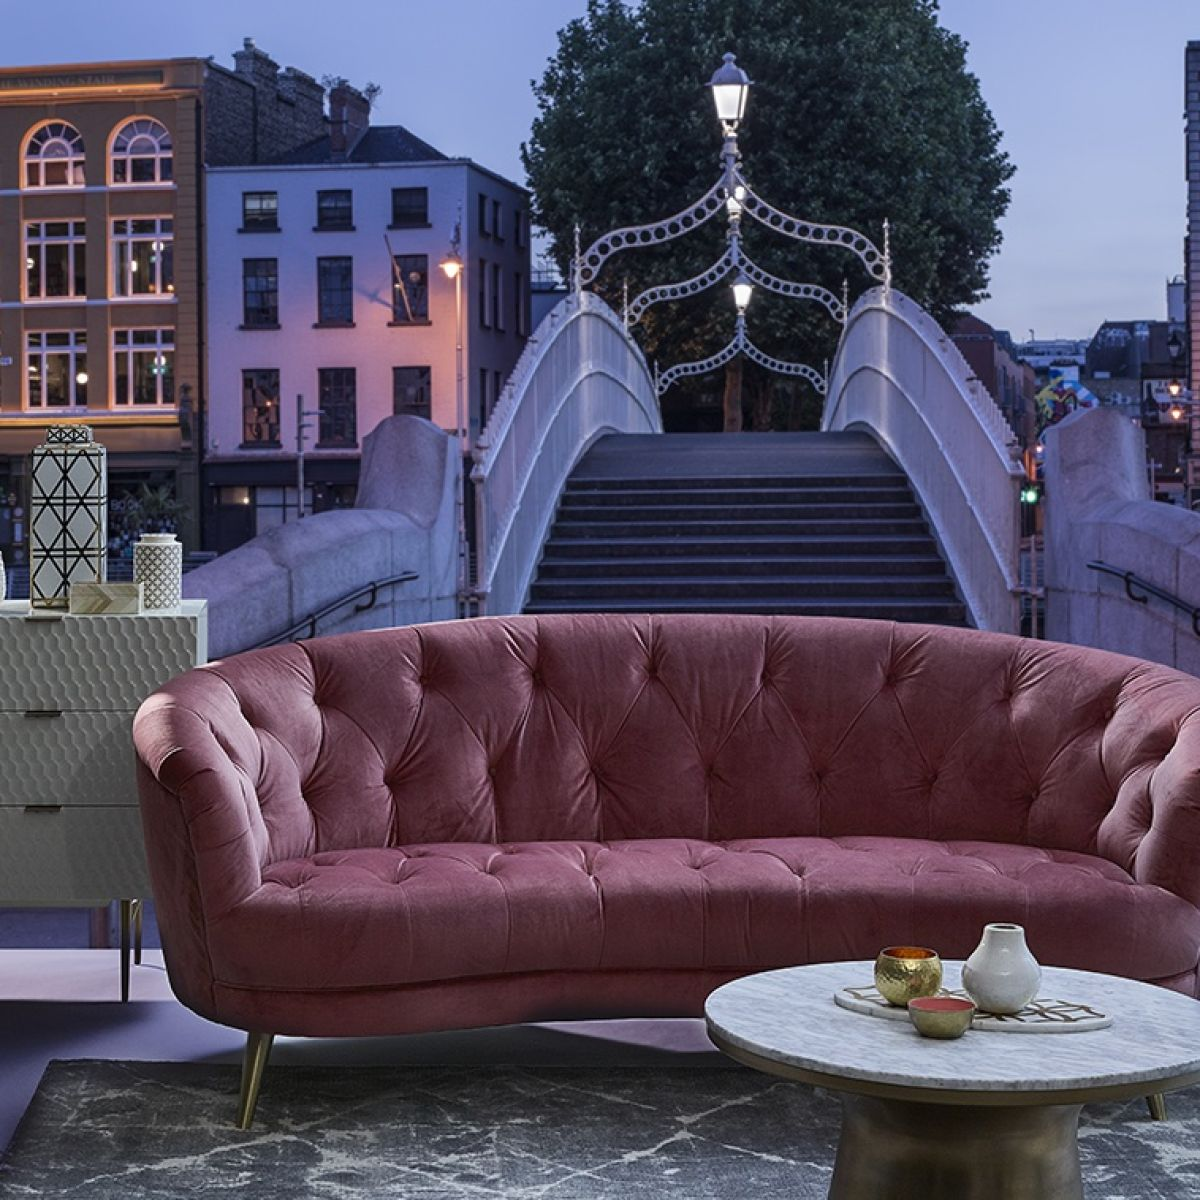 Fair settee arnotts brings the suite life to dublins landmarks